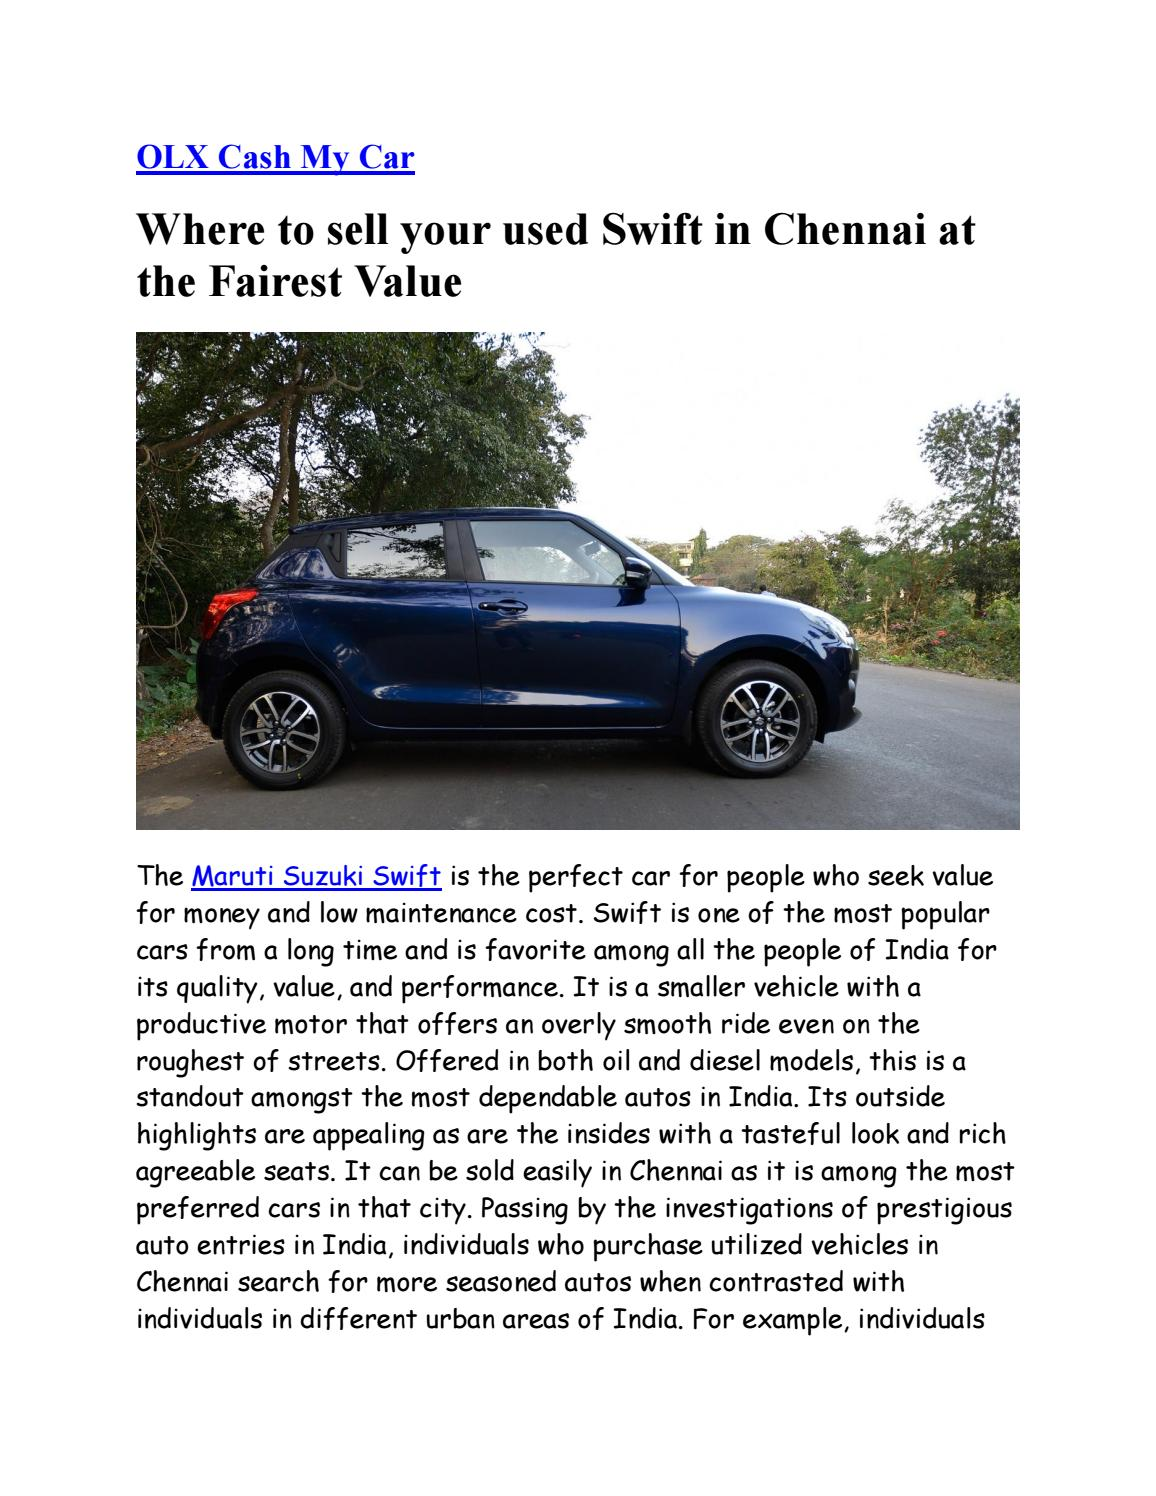 Where To Sell Your Used Swift In Chennai At The Fairest Value By Olx Cash My Car Issuu